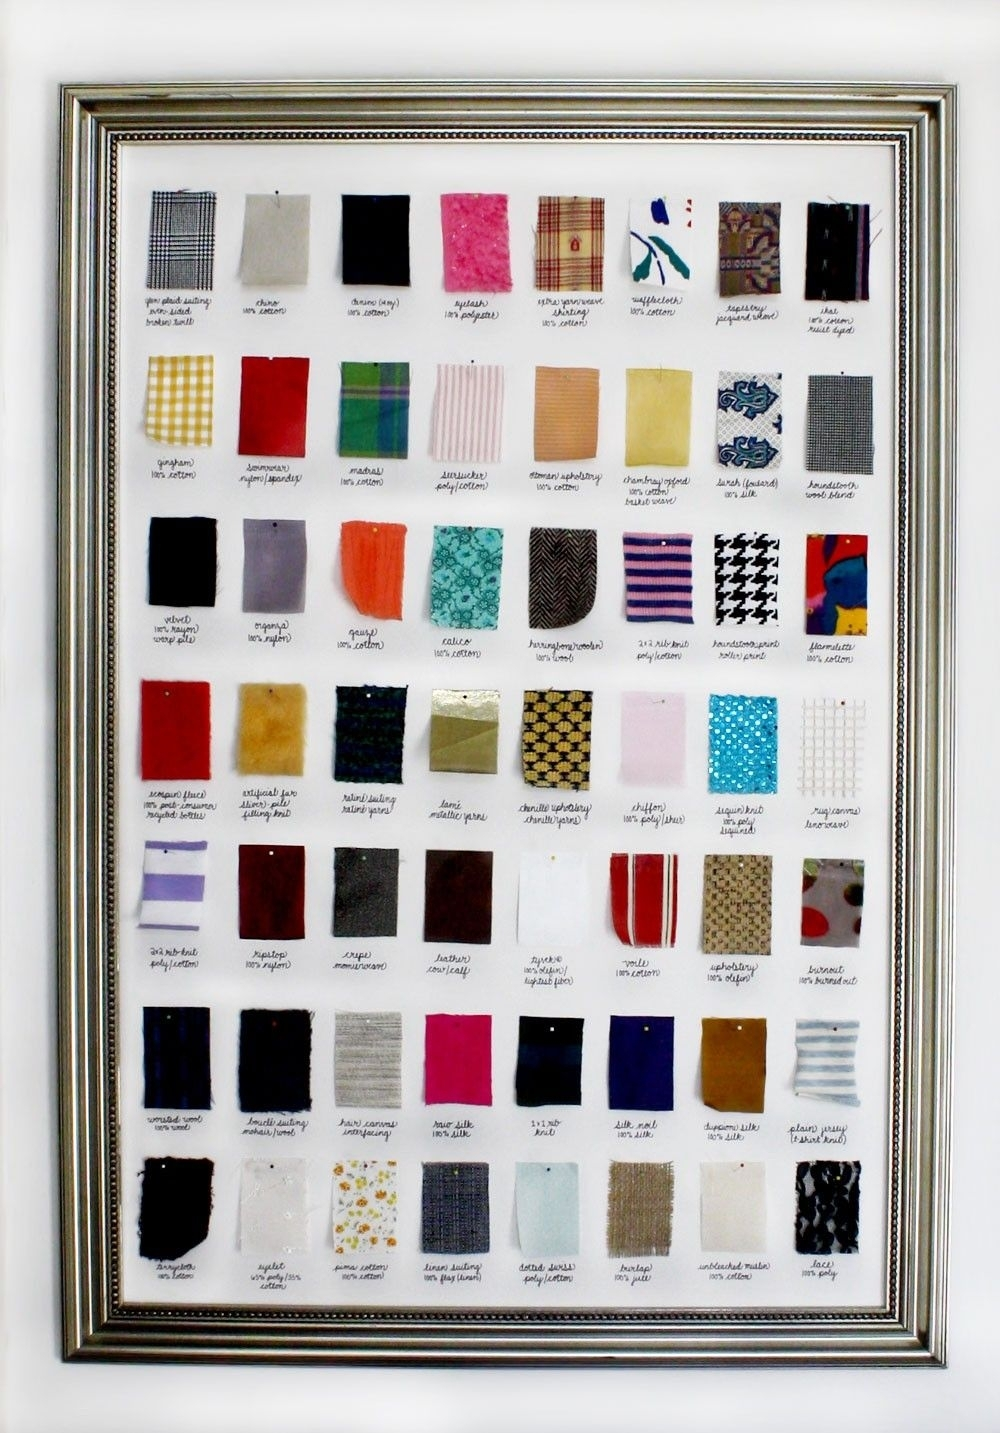 Swatch And Learn: Fashioning A Diy Fabric Library | Fabrics Regarding Most Up To Date Fabric Swatch Wall Art (View 11 of 15)